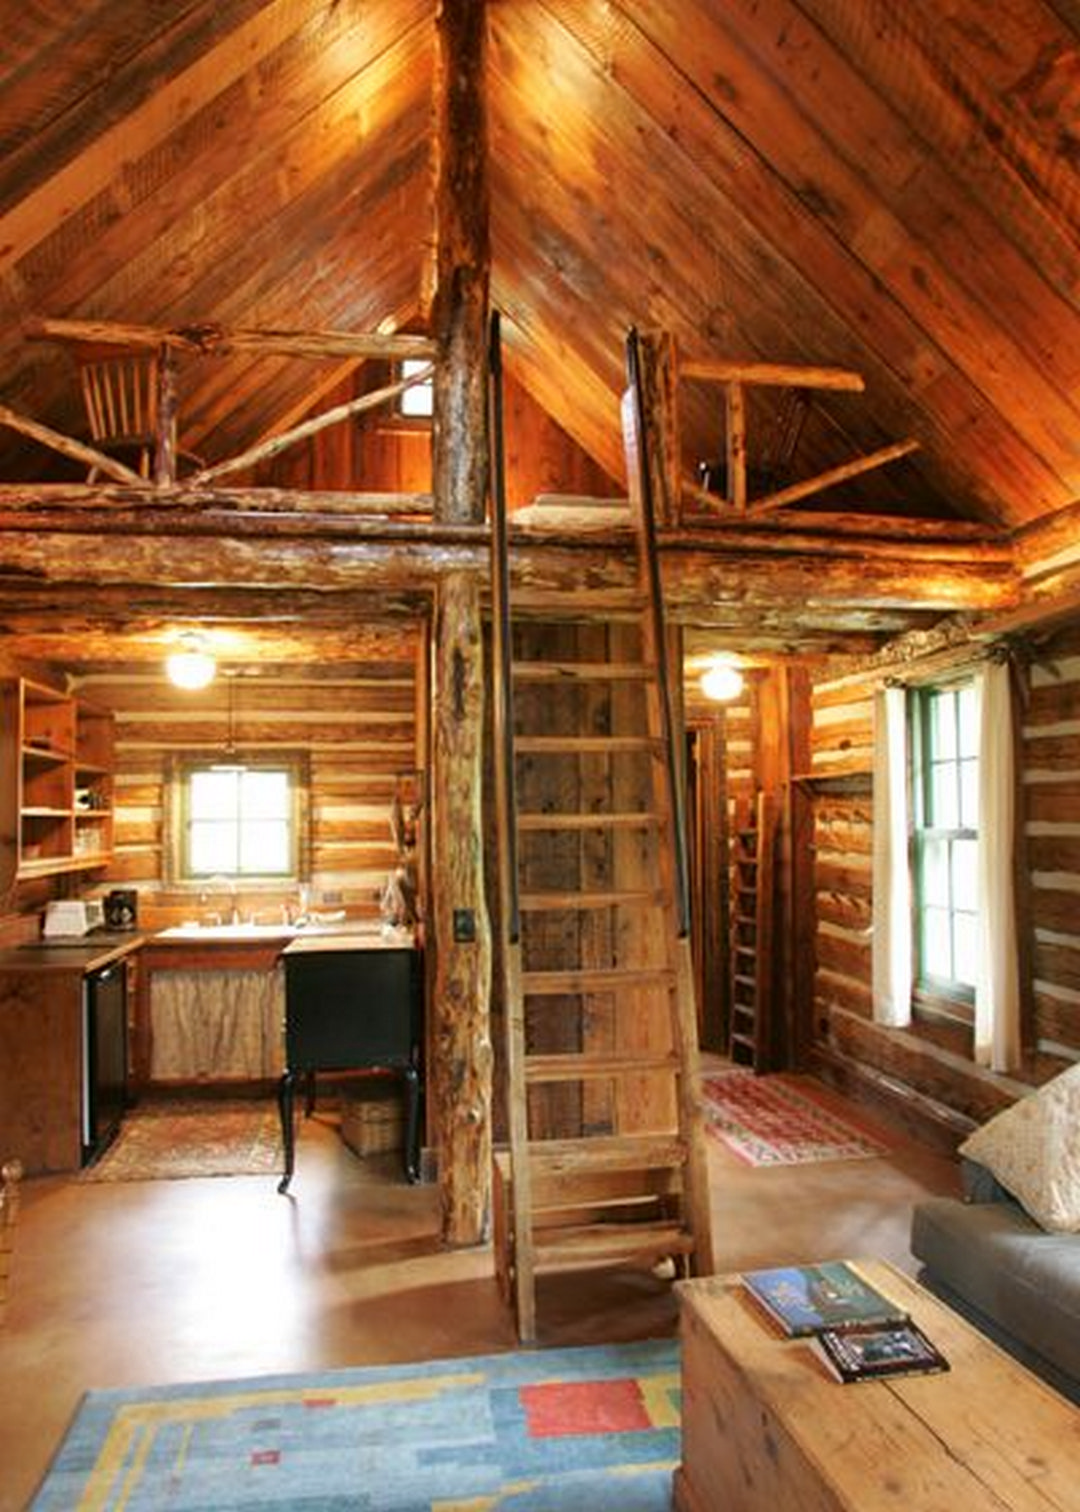 49 Gorgeous Rustic Cabin Interior Ideas Cabin Interiors